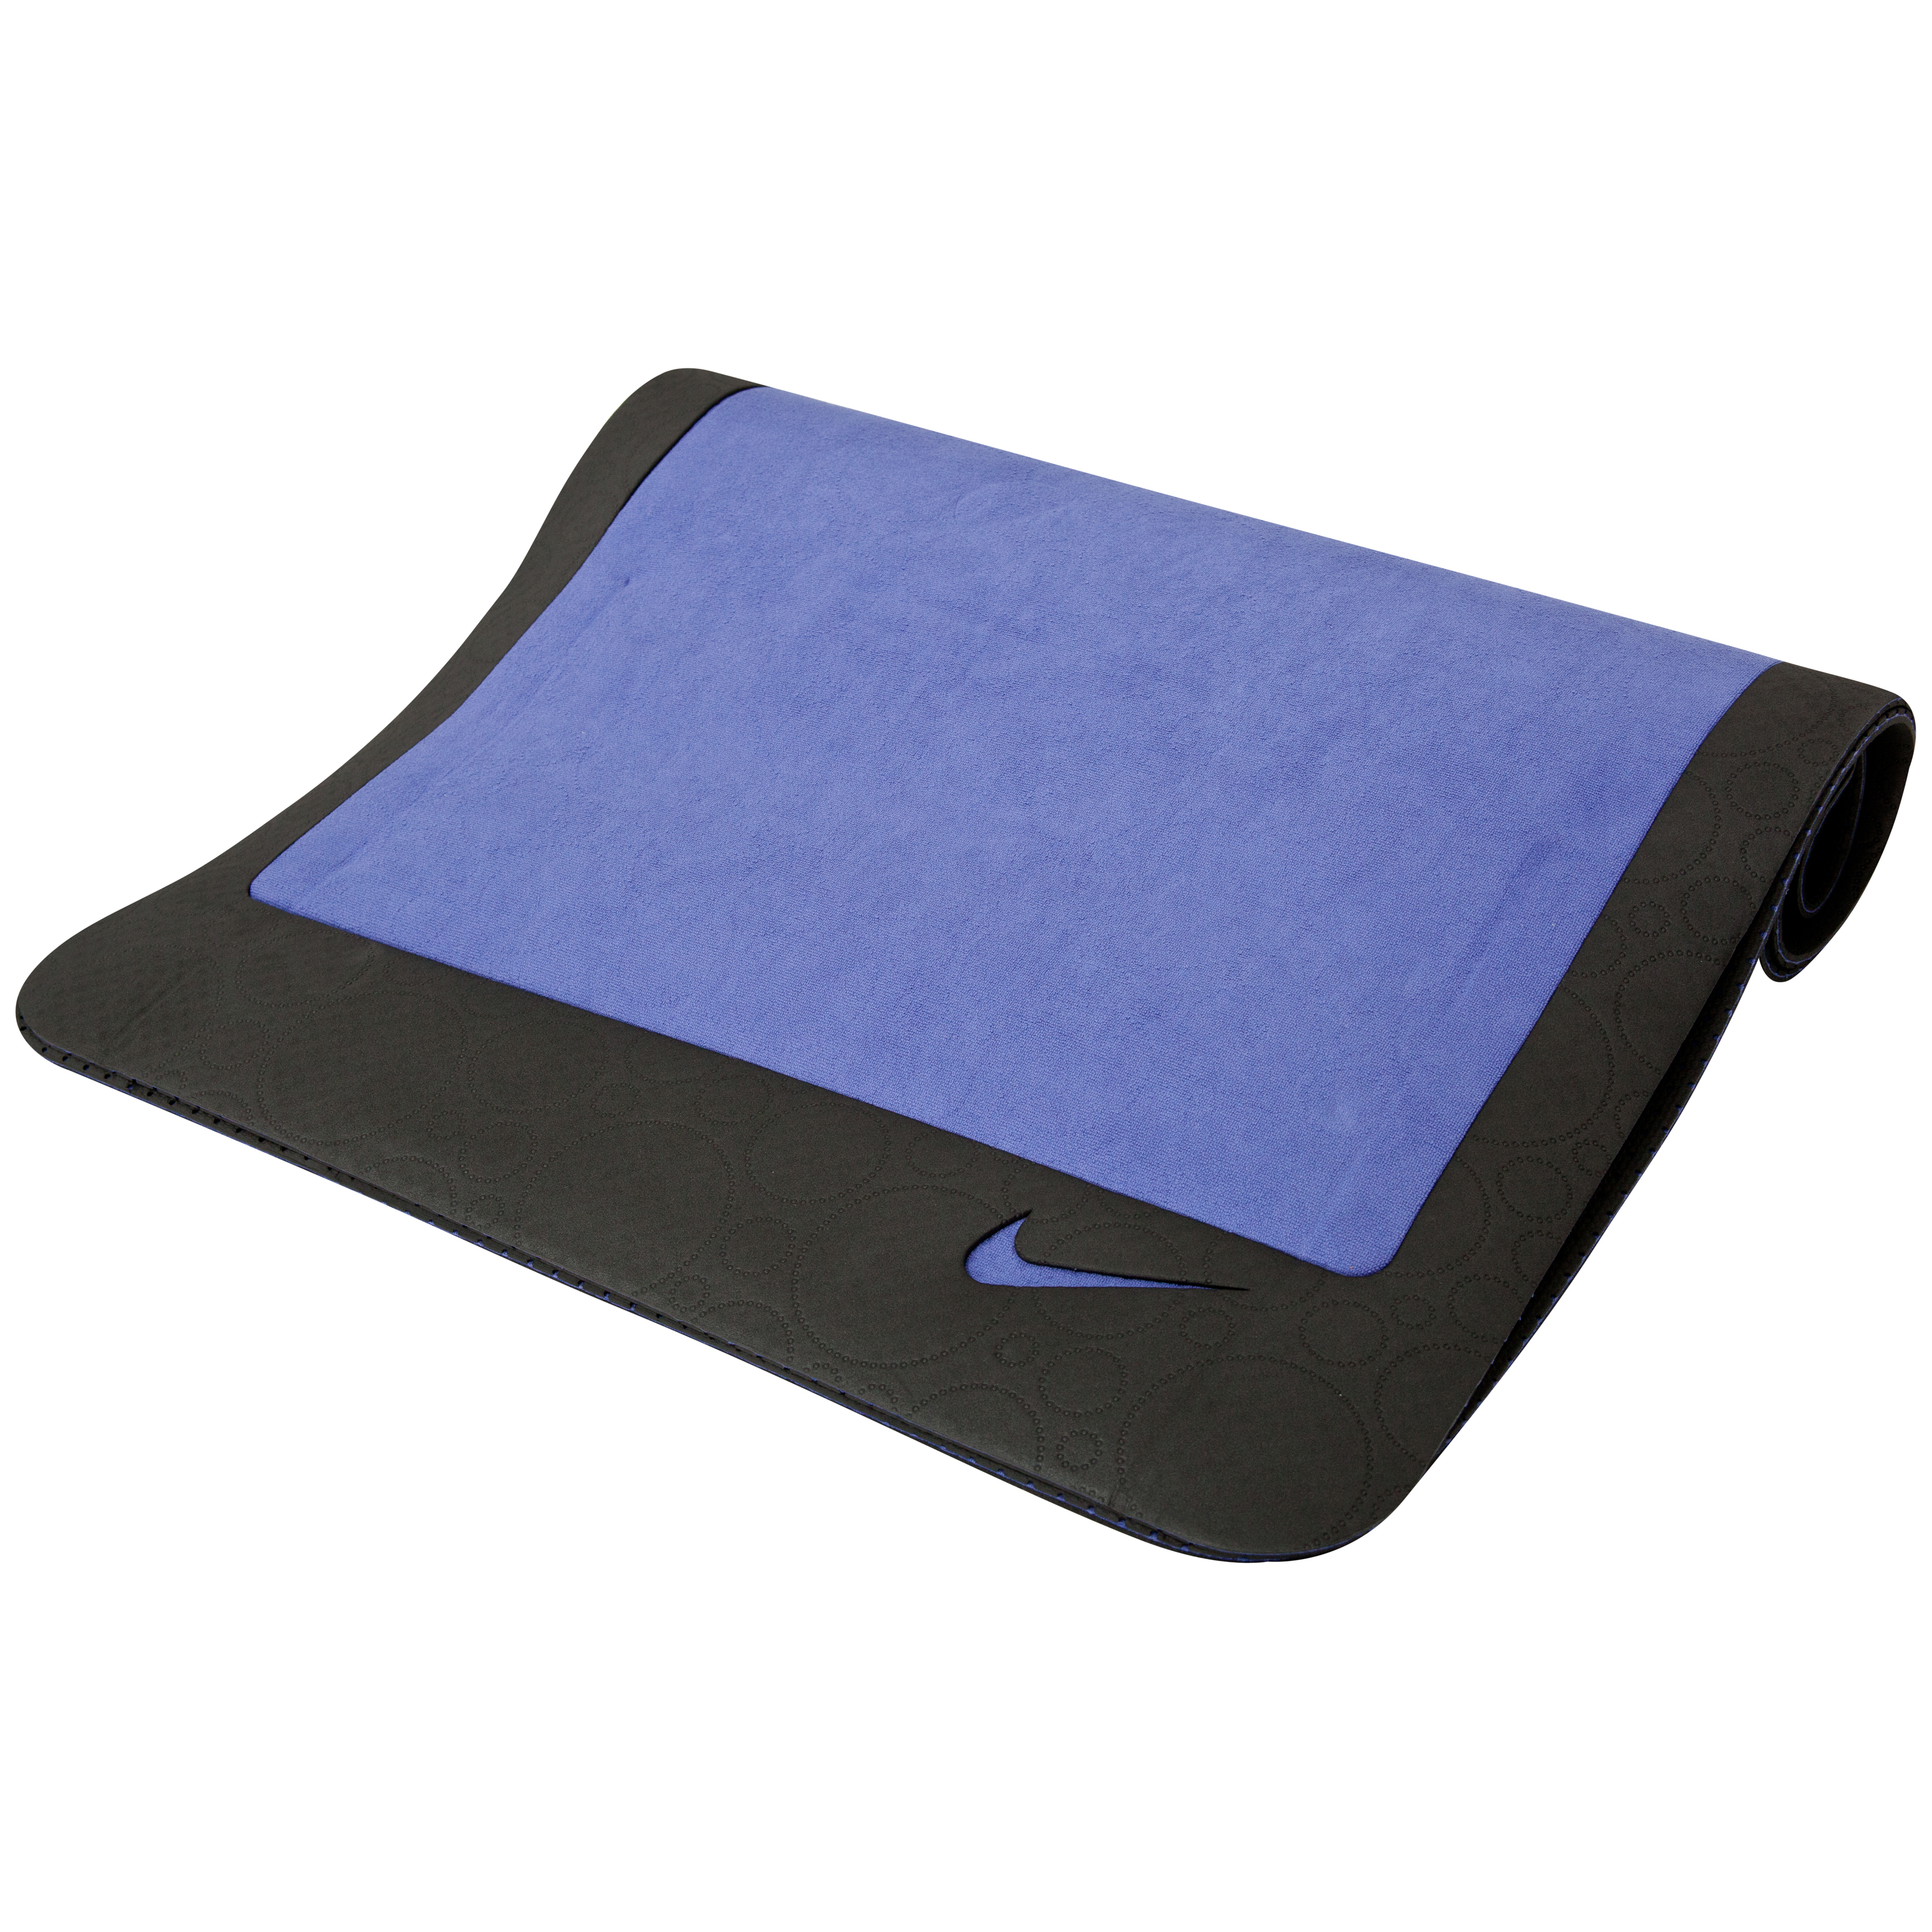 Nike Ultimate Yoga Mat 5mm - Iced Lavender/Anthracite